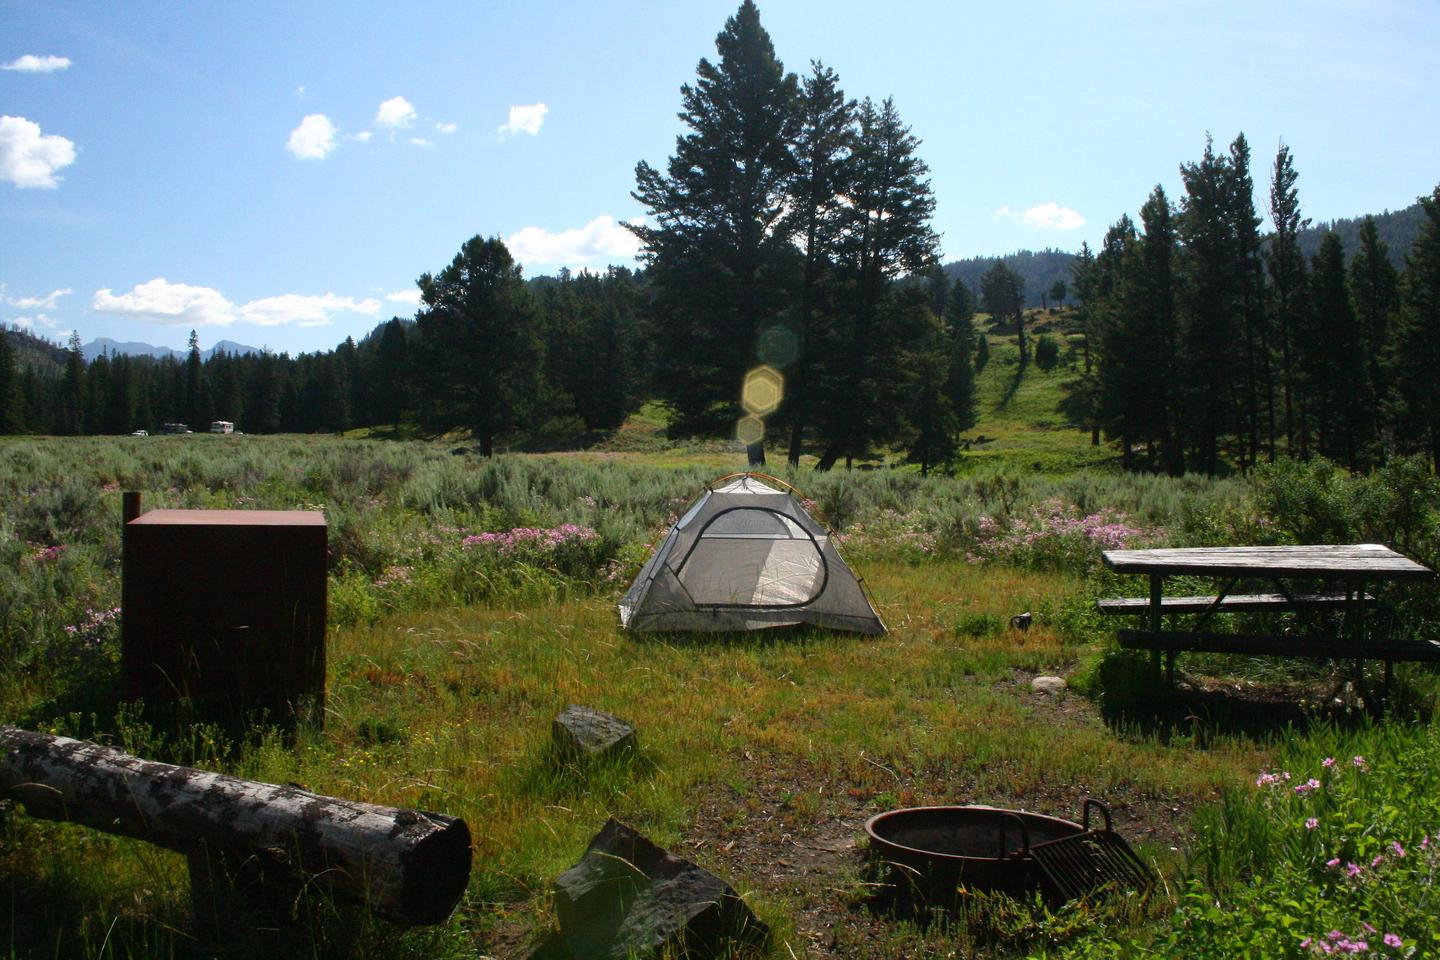 Slough Creek Campground Site #15